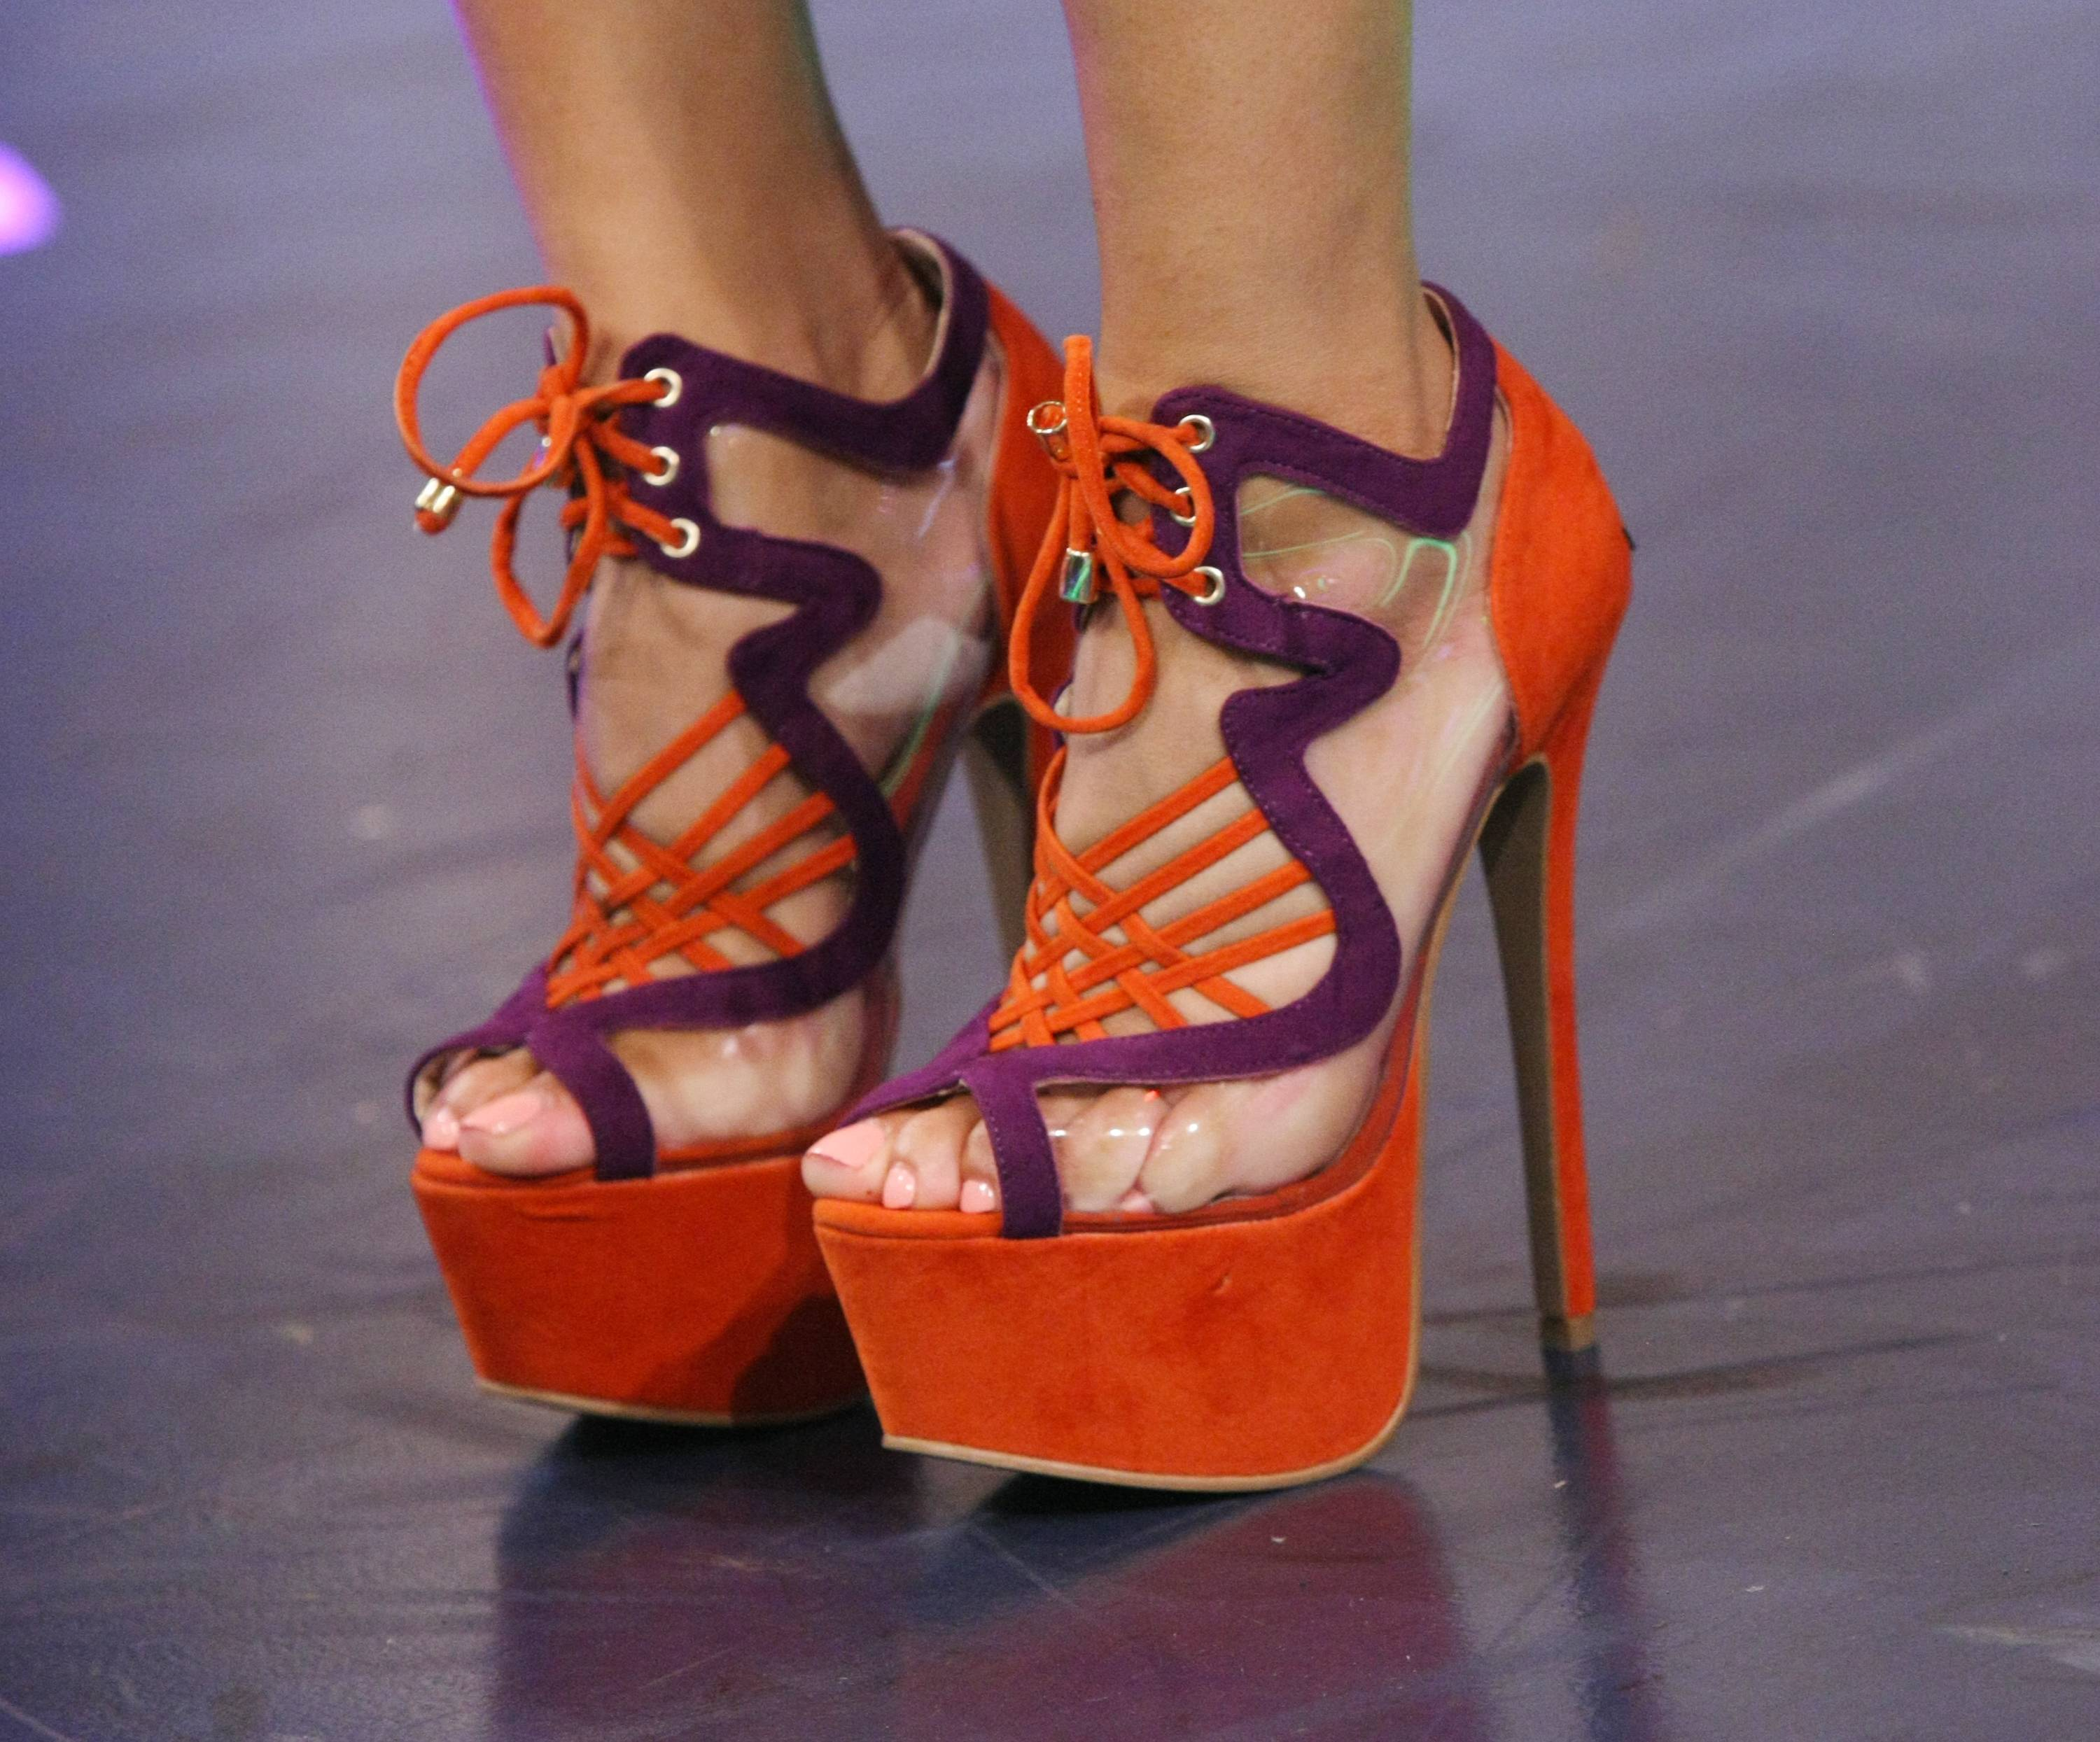 The Shoes She's In - (Photo: Bennett Raglin/BET/Getty Images for BET)